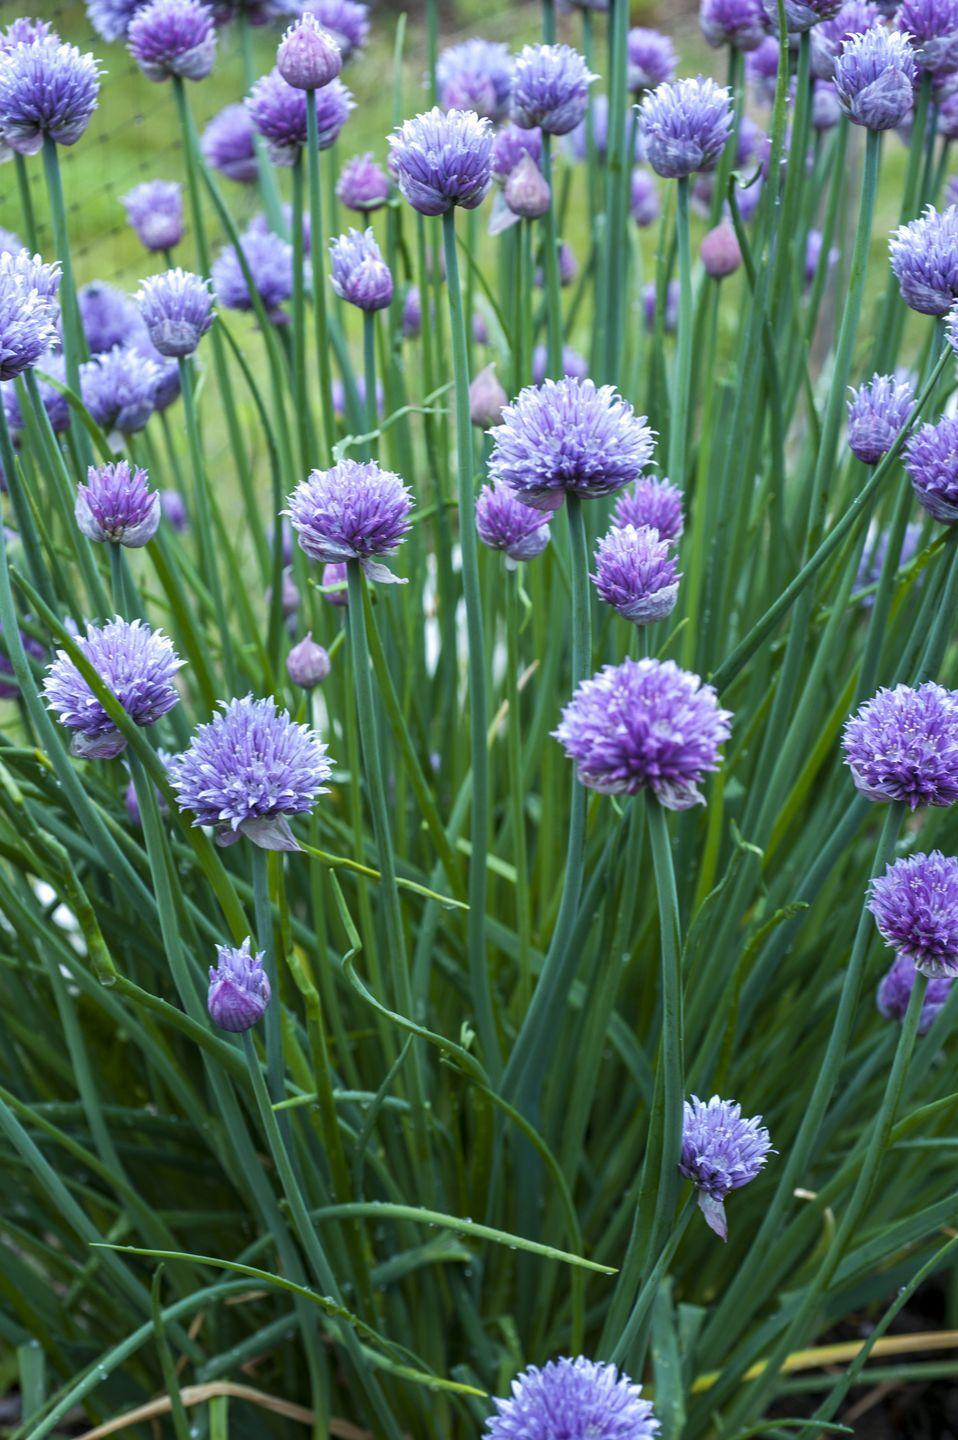 """<p>Chives grow in tidy clumps and are topped with pretty purple flowers in mid-spring. Both the leaves and flowers are completely edible. They also self-sow so new chive plants may pop up in your garden later on. Chives are delicious in potato dishes, soups, salads, and basically any recipe that could use a mild onion flavor. </p><p><a class=""""link rapid-noclick-resp"""" href=""""https://shop.bonnieplants.com/products/onion-chives?ef_id=EAIaIQobChMIlo3Ny6Dj8AIVYolbCh3IuQncEAQYASABEgLHuPD_BwE%3AG%3As&s_kwcid=AL%214676%213%21476941640772%21%21%21g%211211065321414%21&kpid=go_cmp-10070754691_adg-109732586062_ad-476941640772_pla-1211065321414_dev-c_ext-_prd-202020_sig-EAIaIQobChMIlo3Ny6Dj8AIVYolbCh3IuQncEAQYASABEgLHuPD_BwE&gclid=EAIaIQobChMIlo3Ny6Dj8AIVYolbCh3IuQncEAQYASABEgLHuPD_BwE"""" rel=""""nofollow noopener"""" target=""""_blank"""" data-ylk=""""slk:SHOP NOW"""">SHOP NOW</a></p>"""